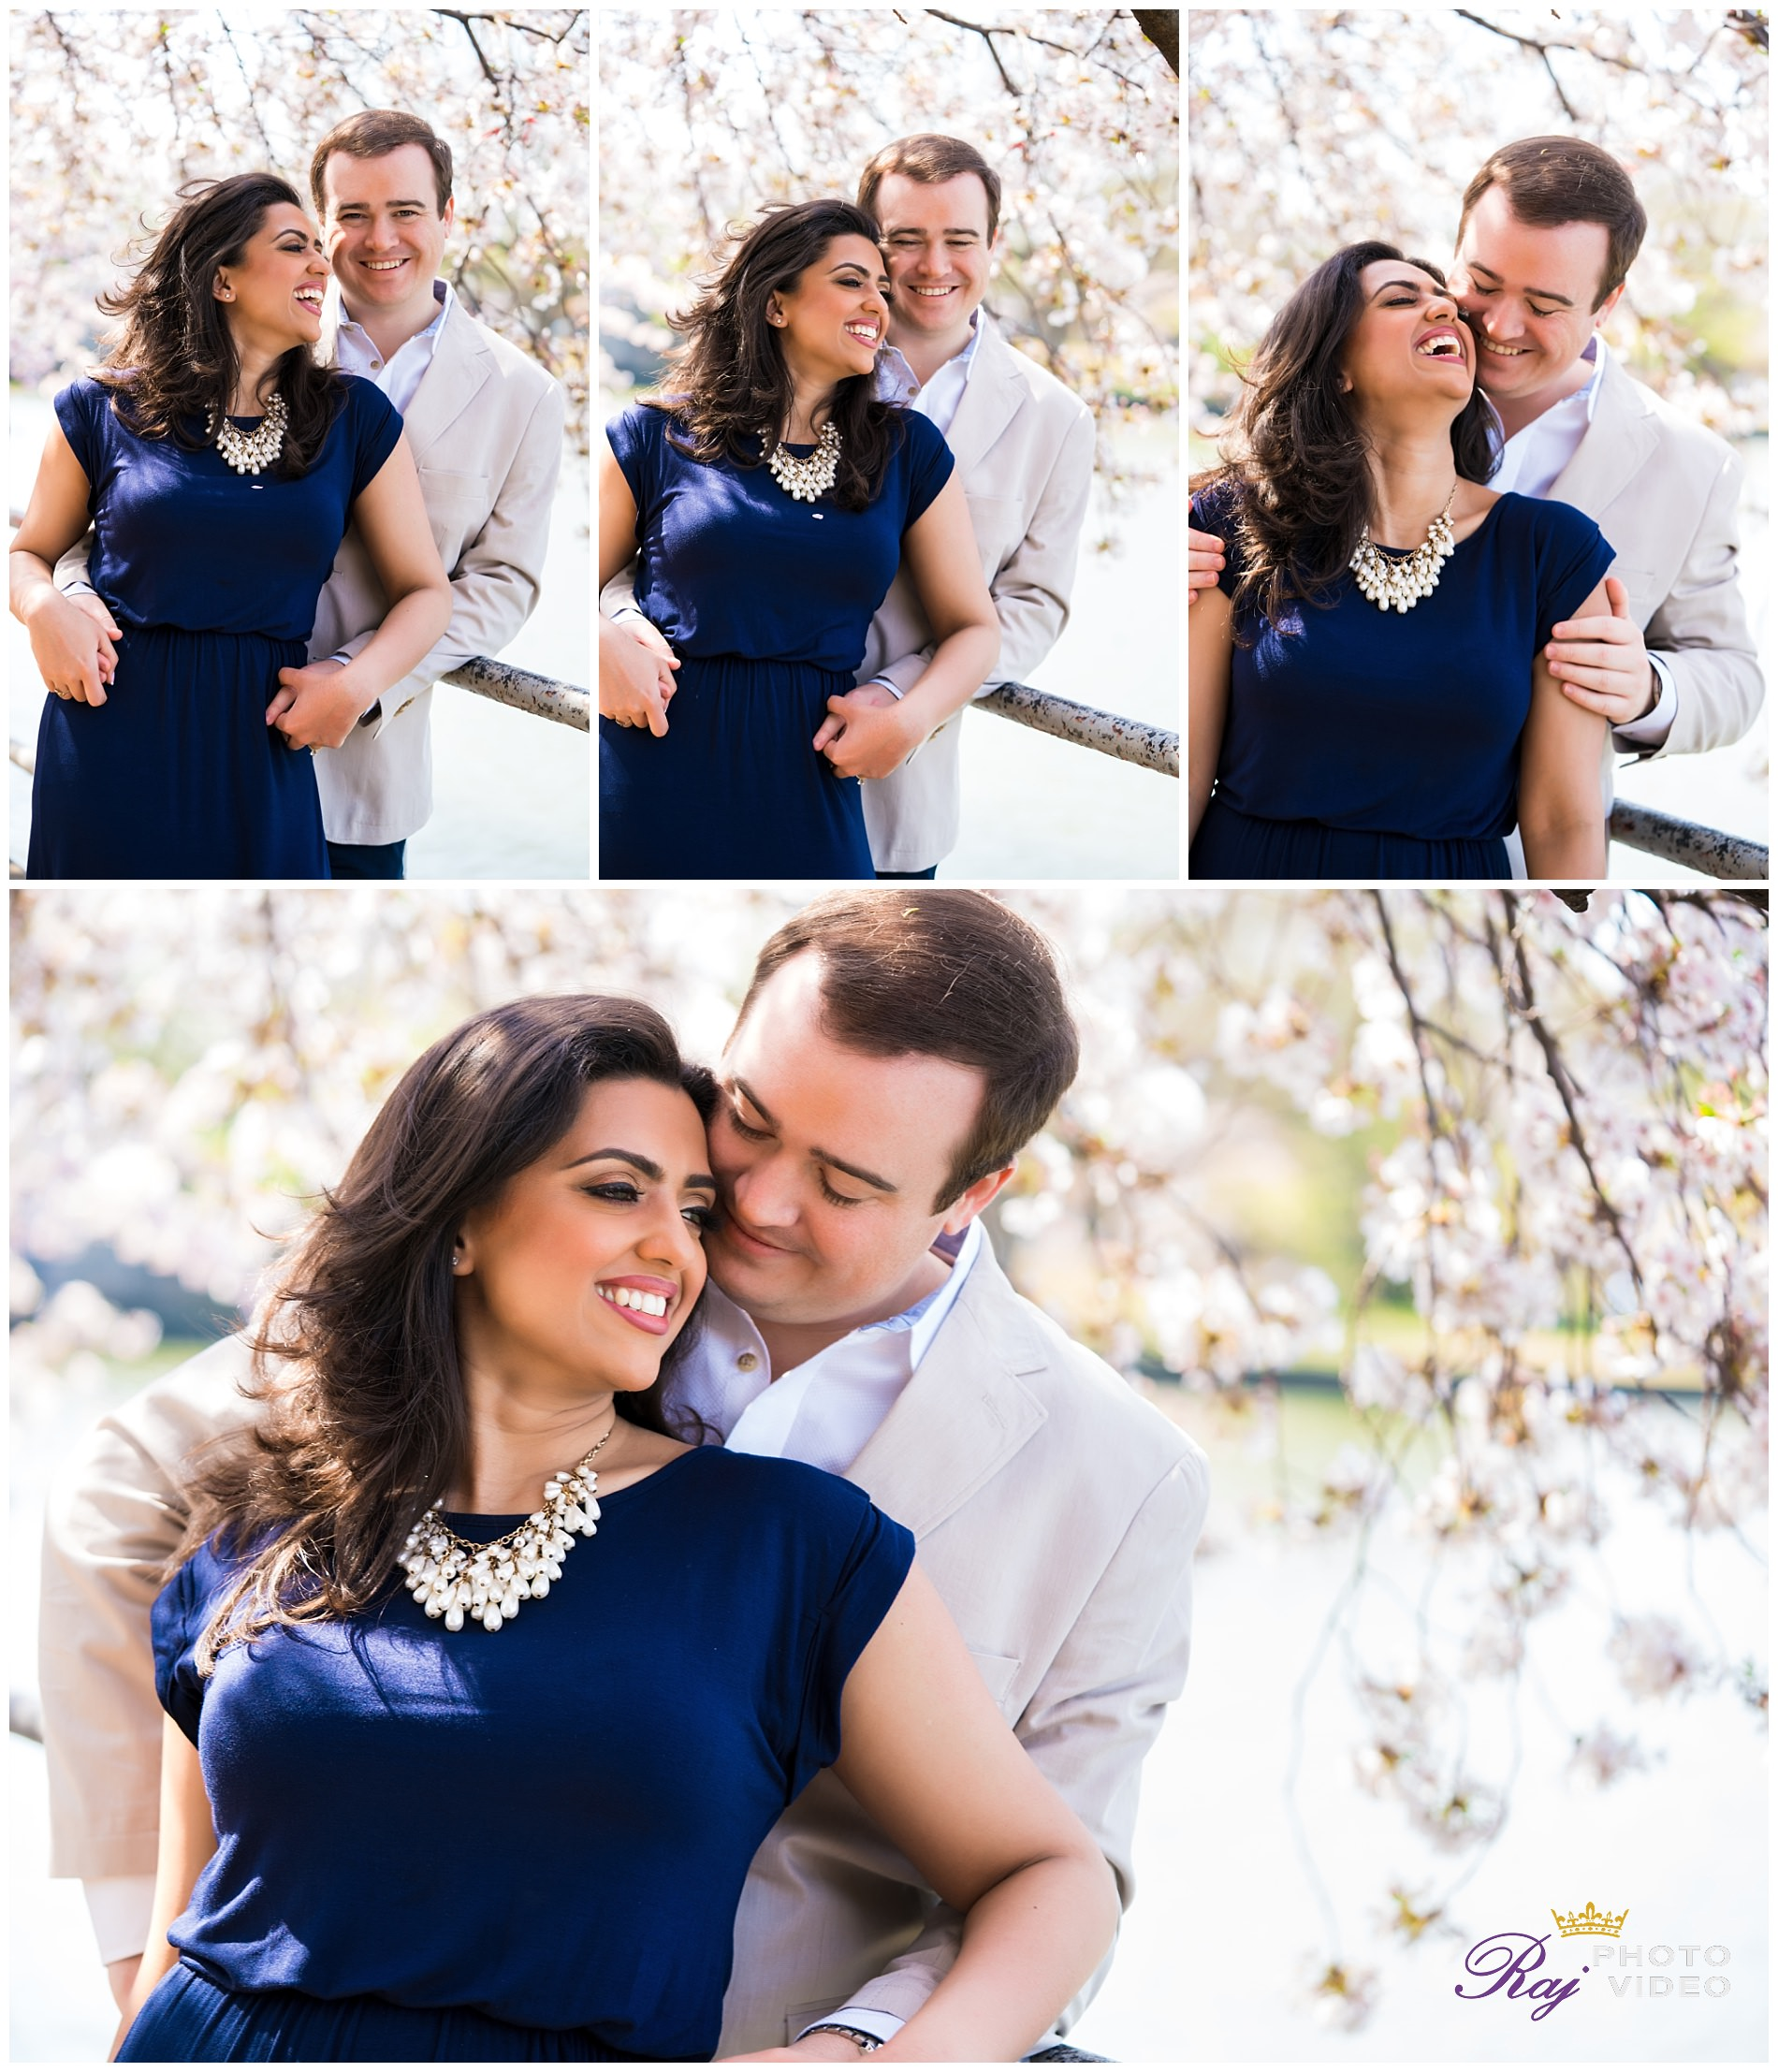 National-Cherry-Blossom-Festival-Washington-DC-Engagement-Shoot-Aditi-Peter-6.jpg